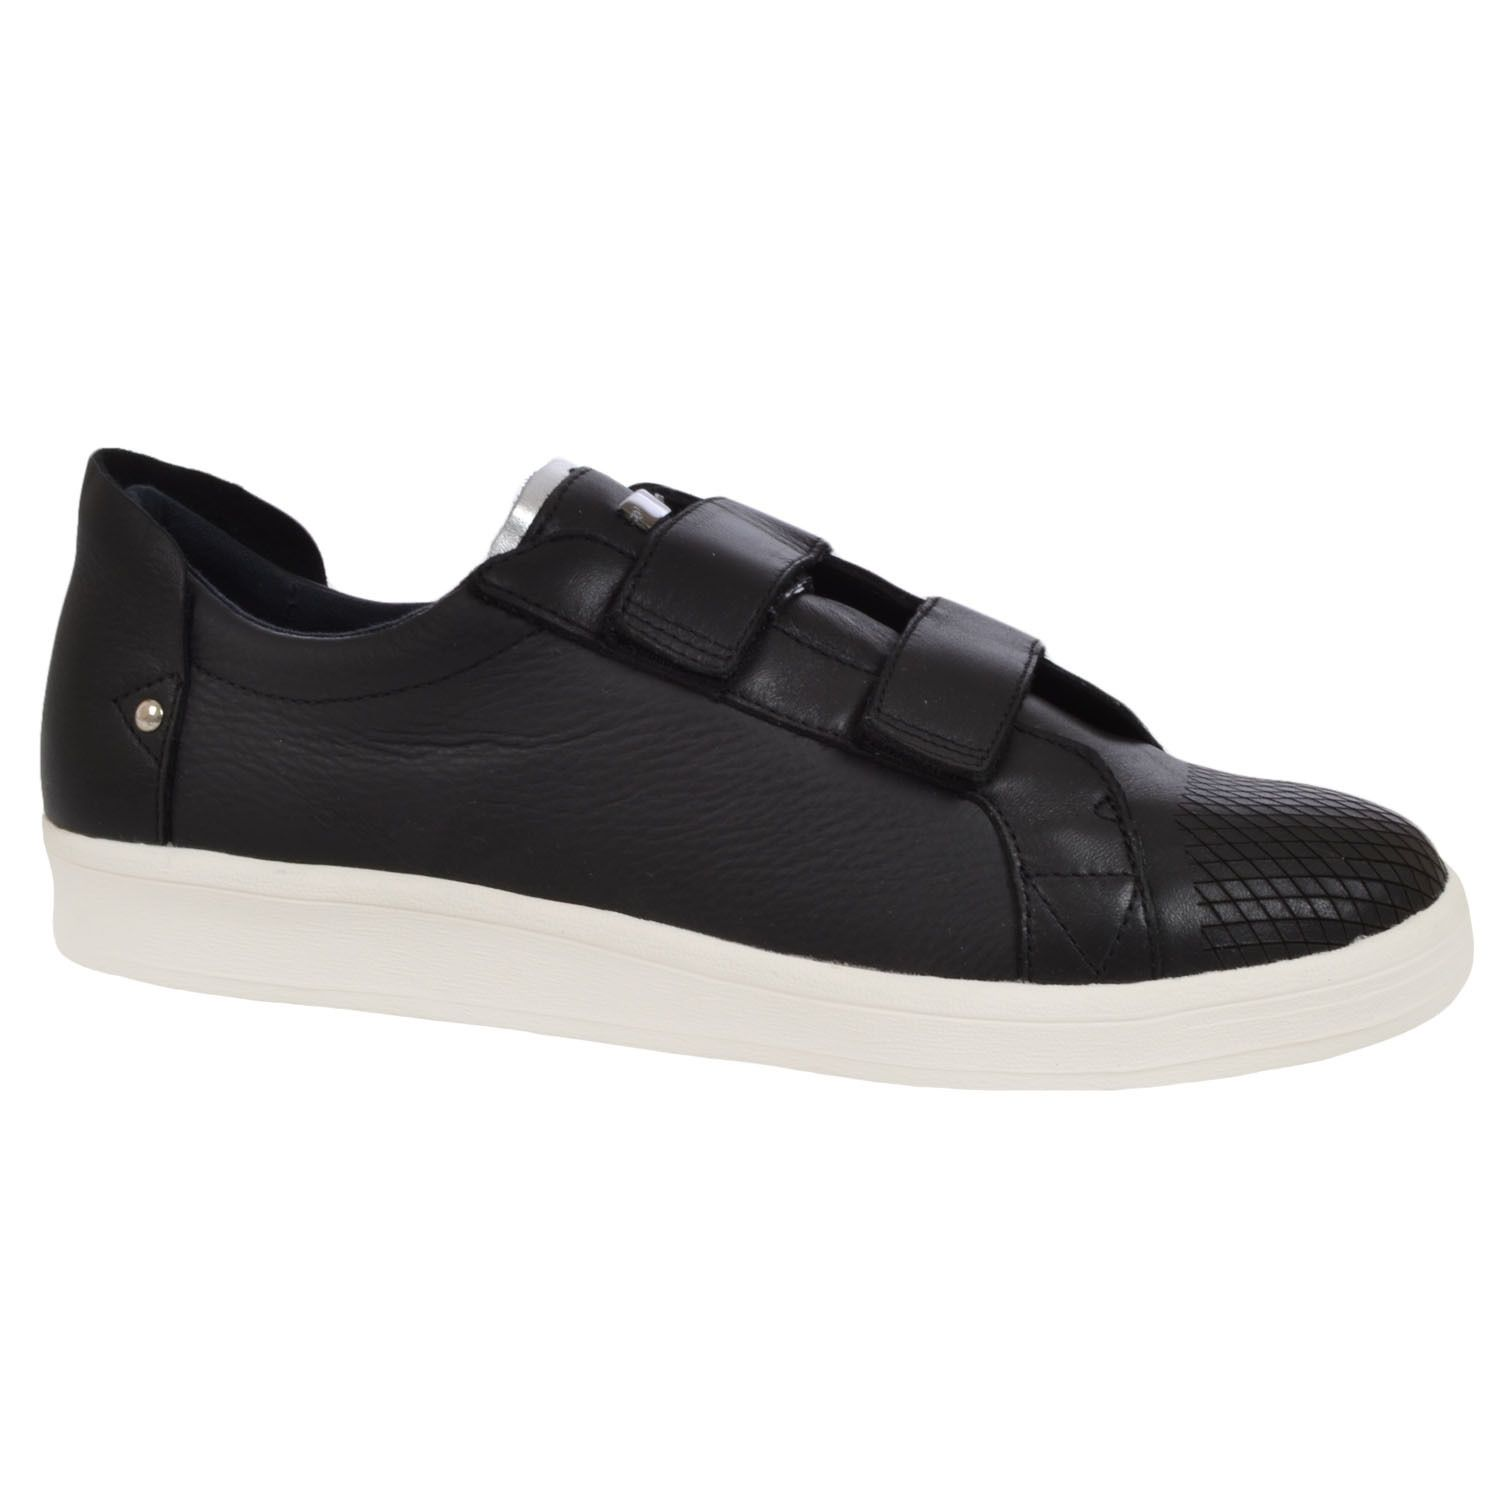 adidas SLVR Mens Leather Cupsole Velcro Trainers - Black